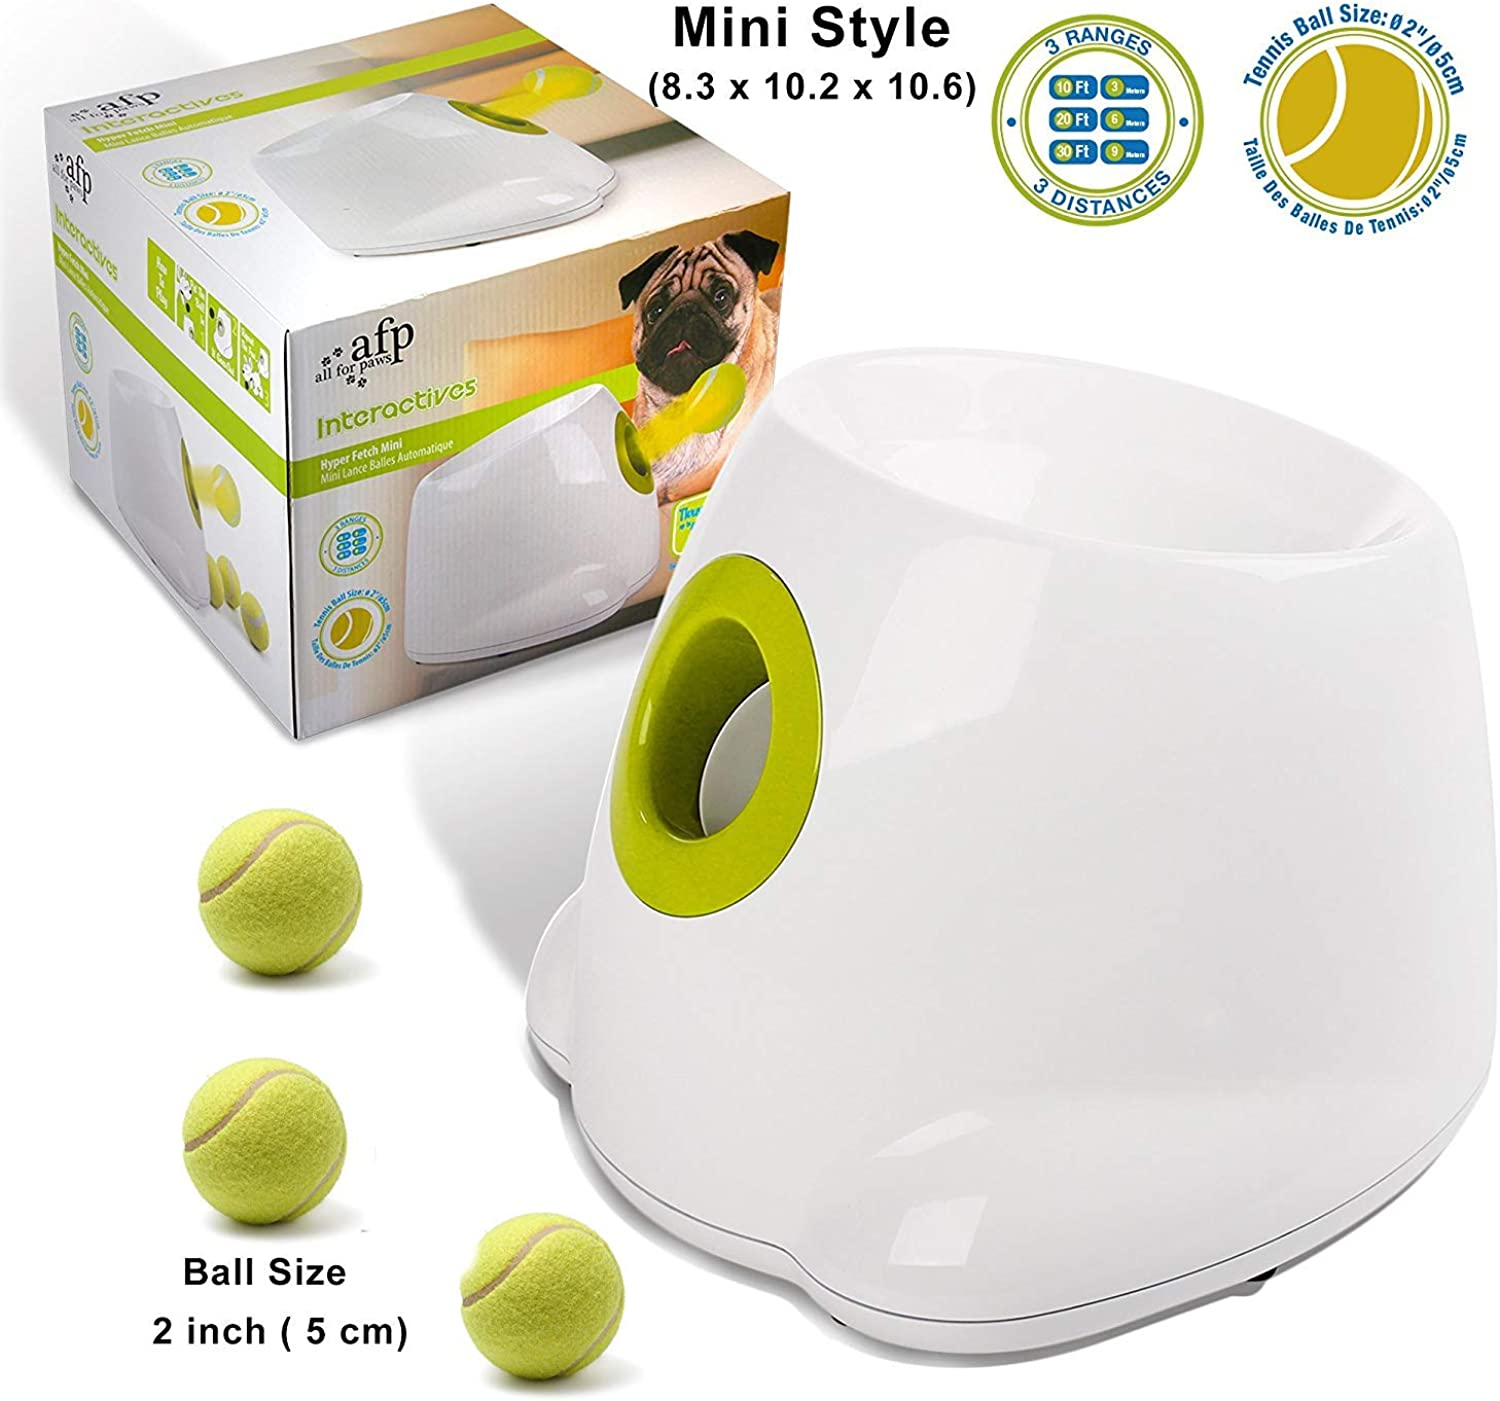 Evin All PAWS Hyperfetch Ultimate Throw Toys (Mini Style),Includes 3 tennis balls